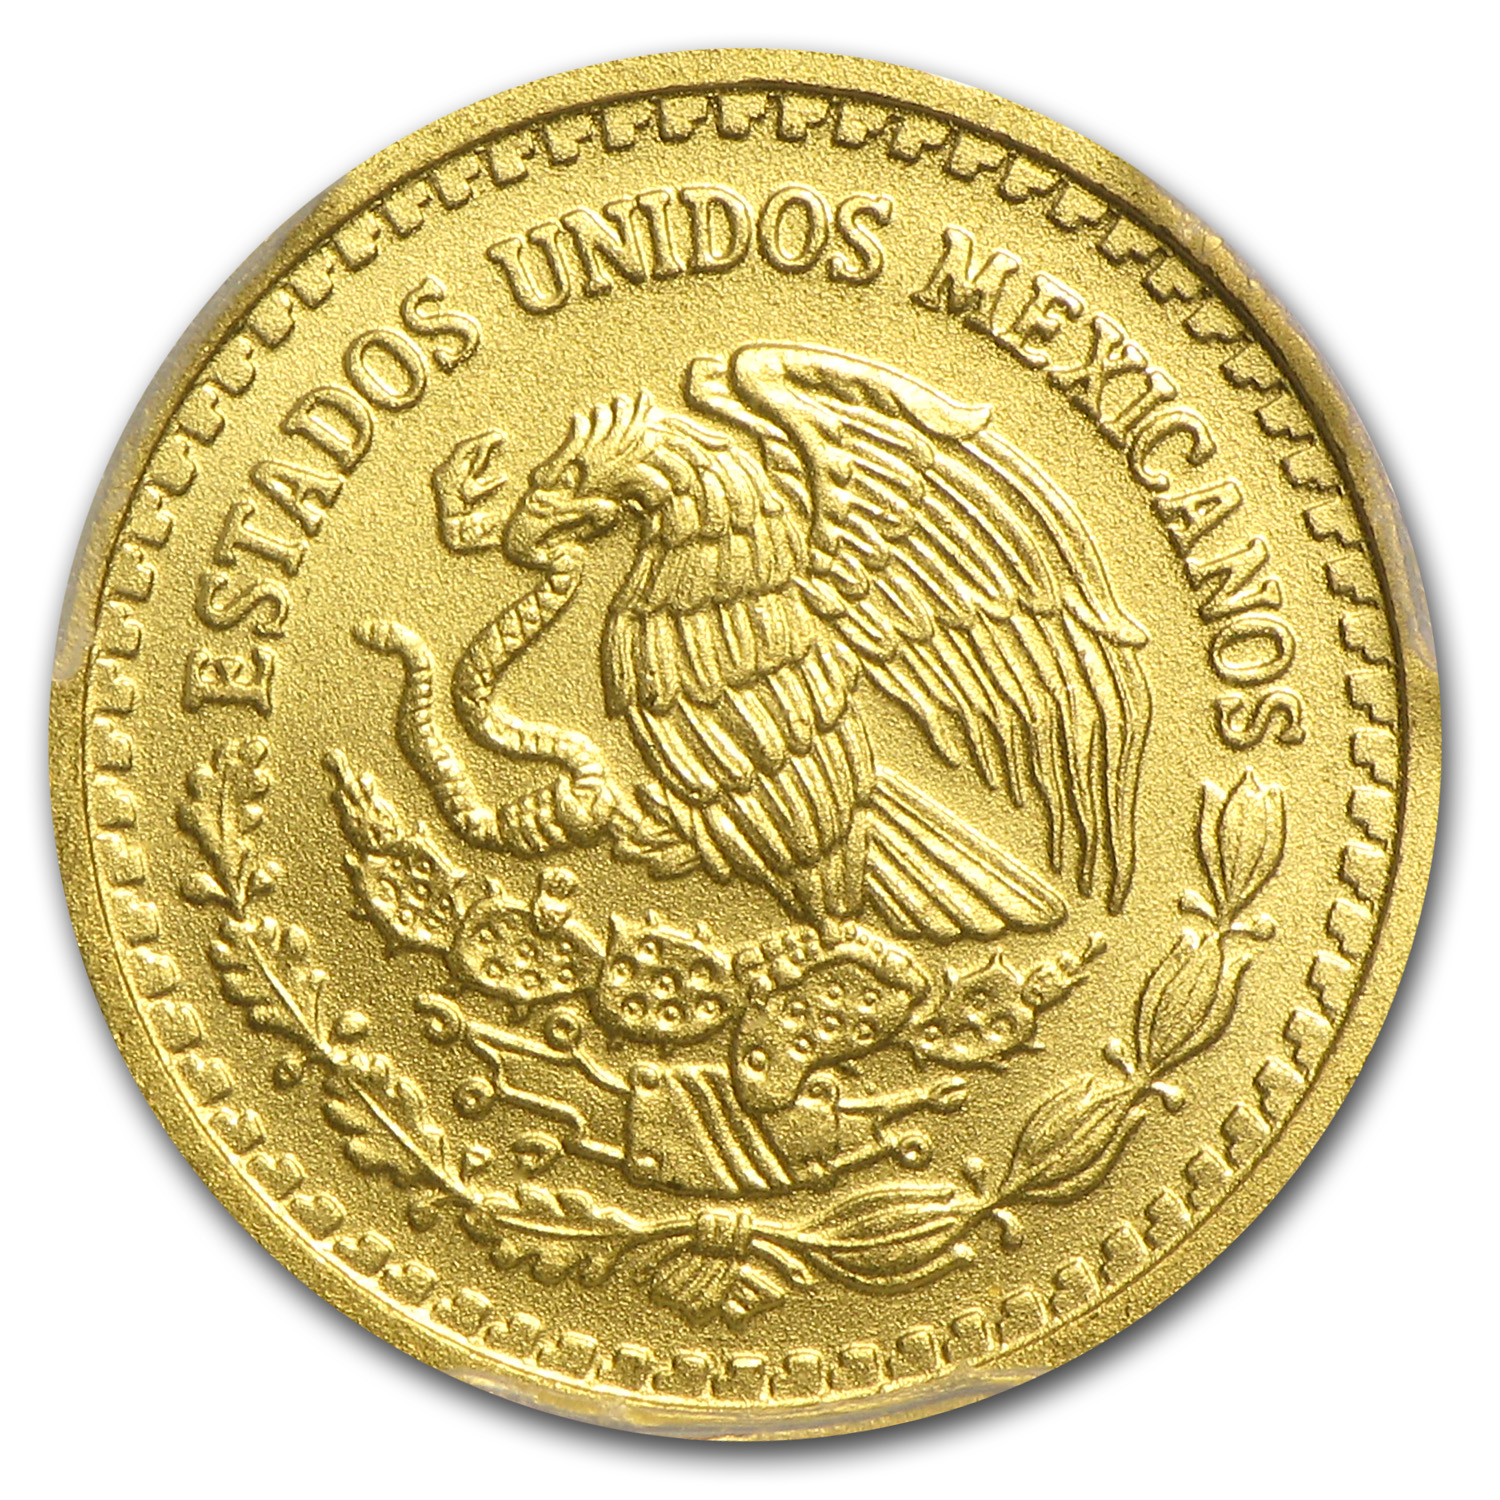 2014 Mexico 1/10 oz Gold Libertad MS-70 PCGS